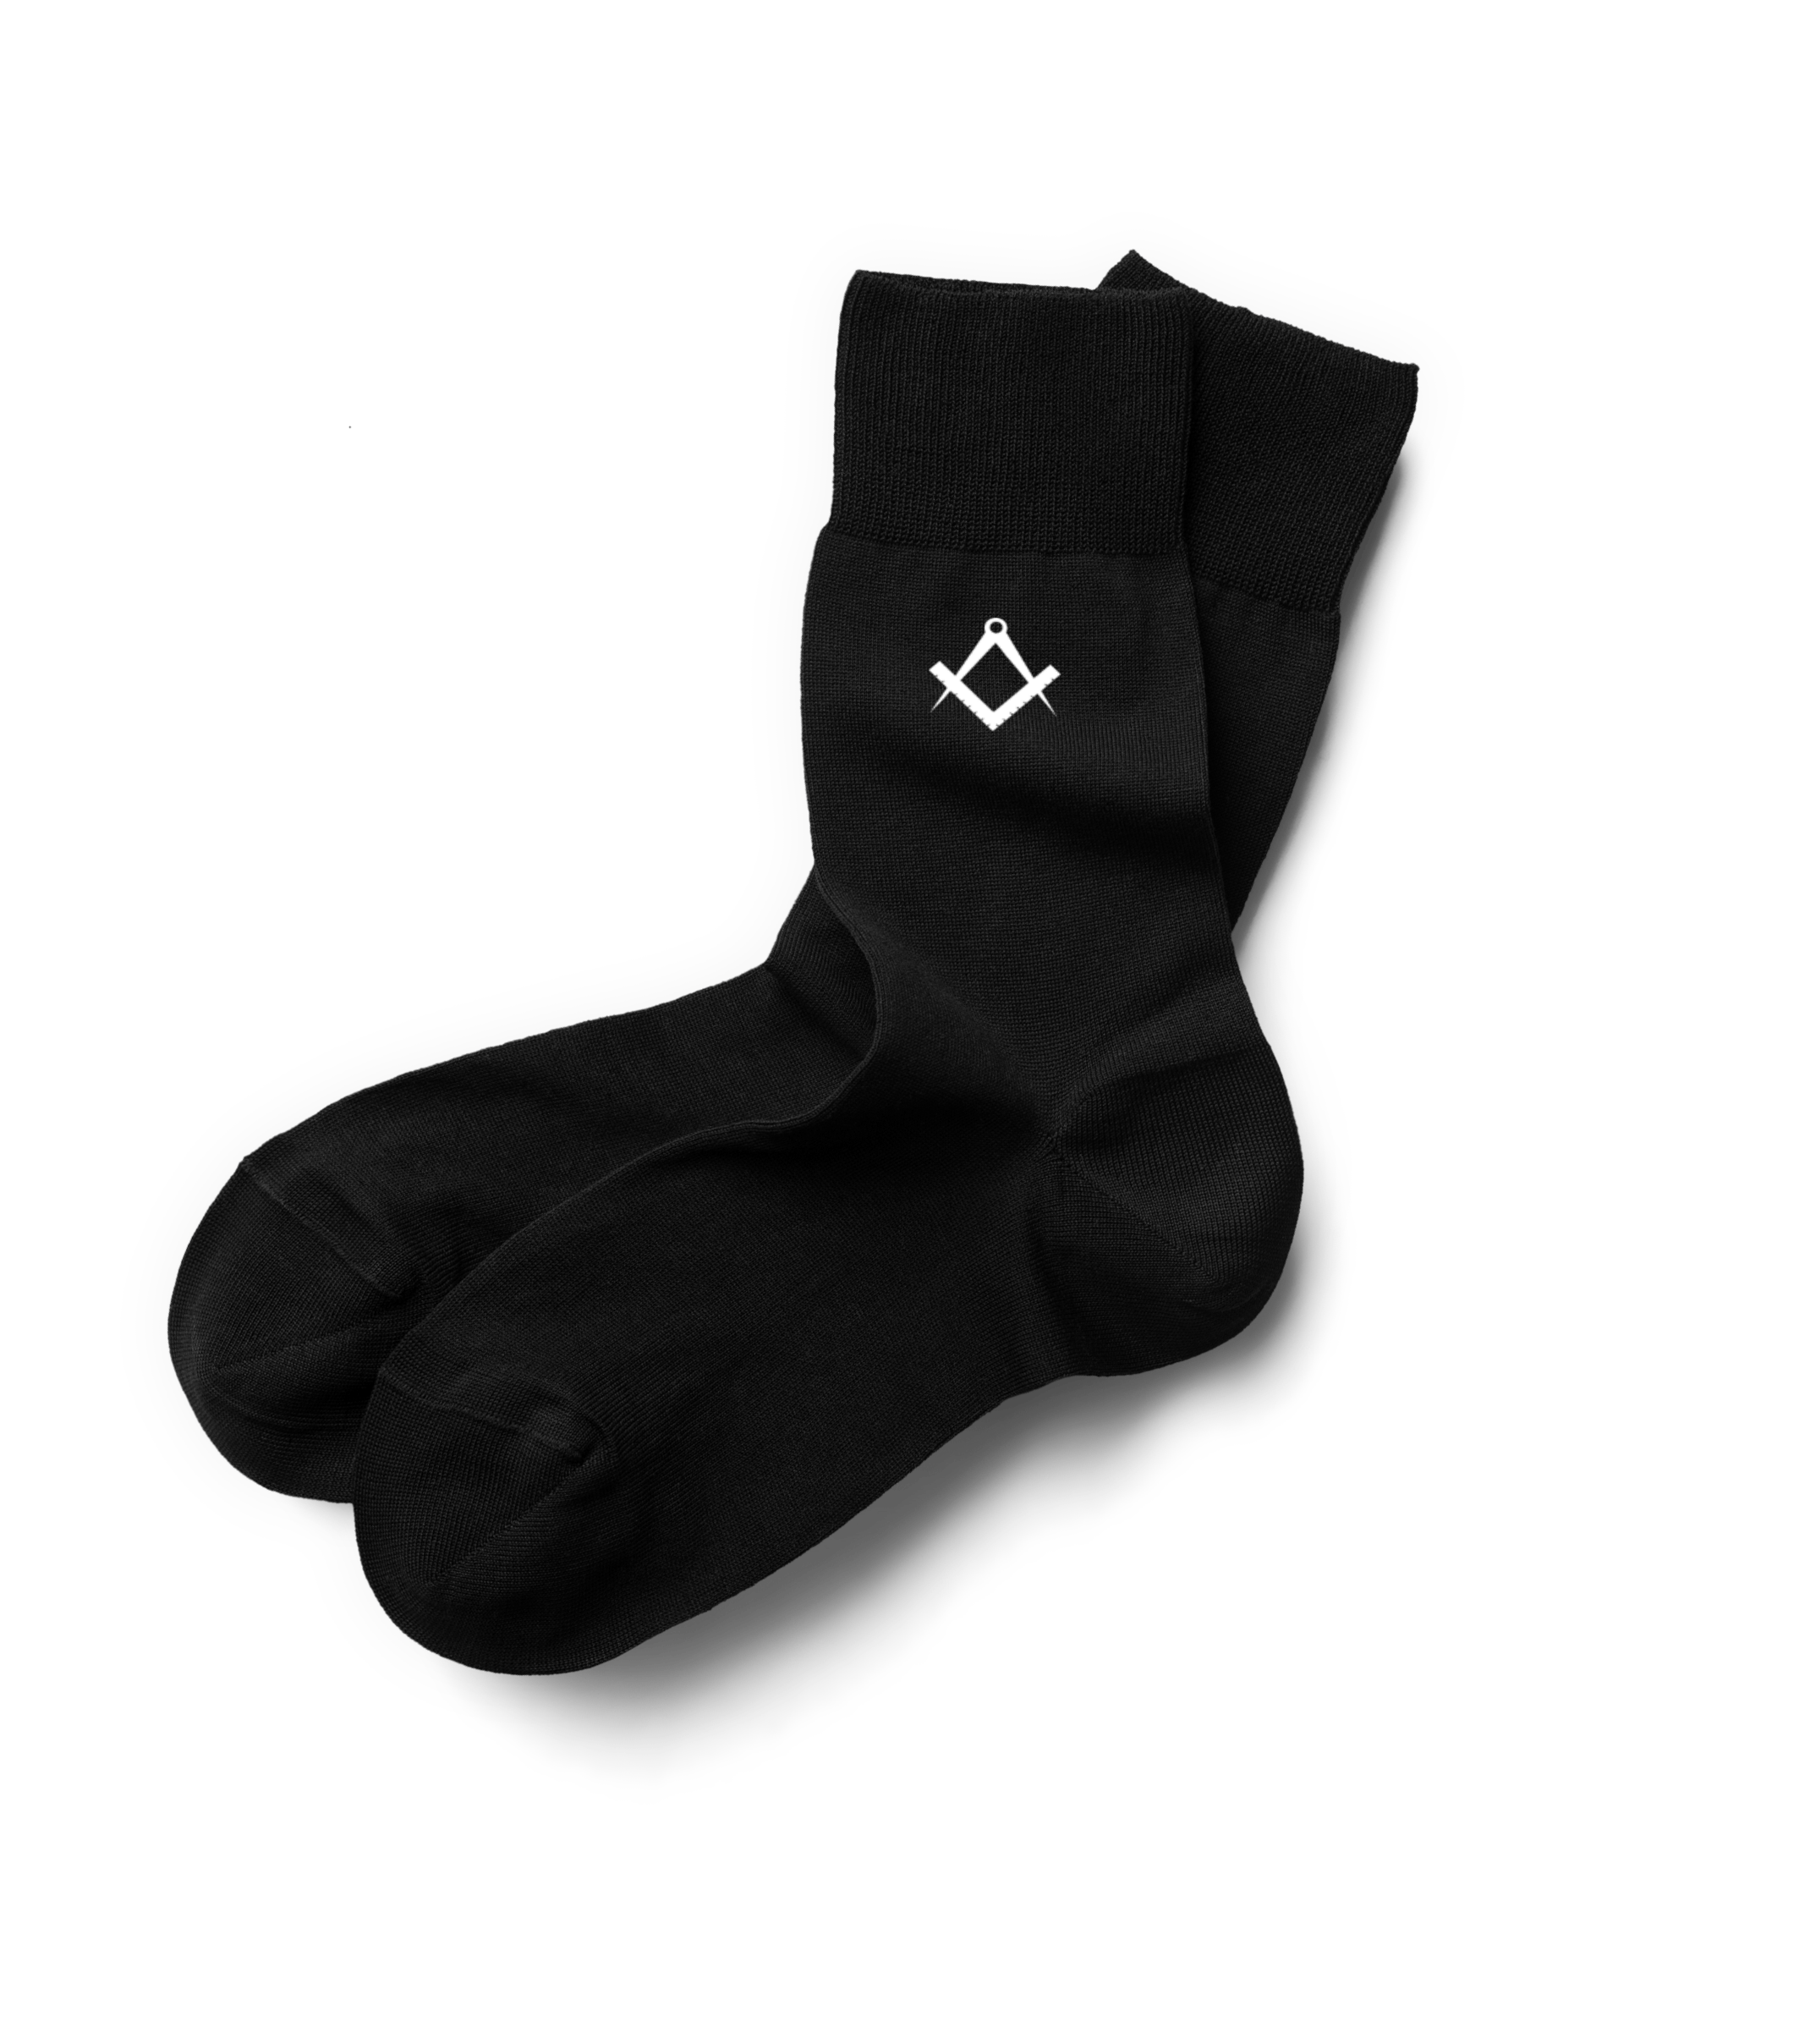 freemasons sock black - Great gift or present